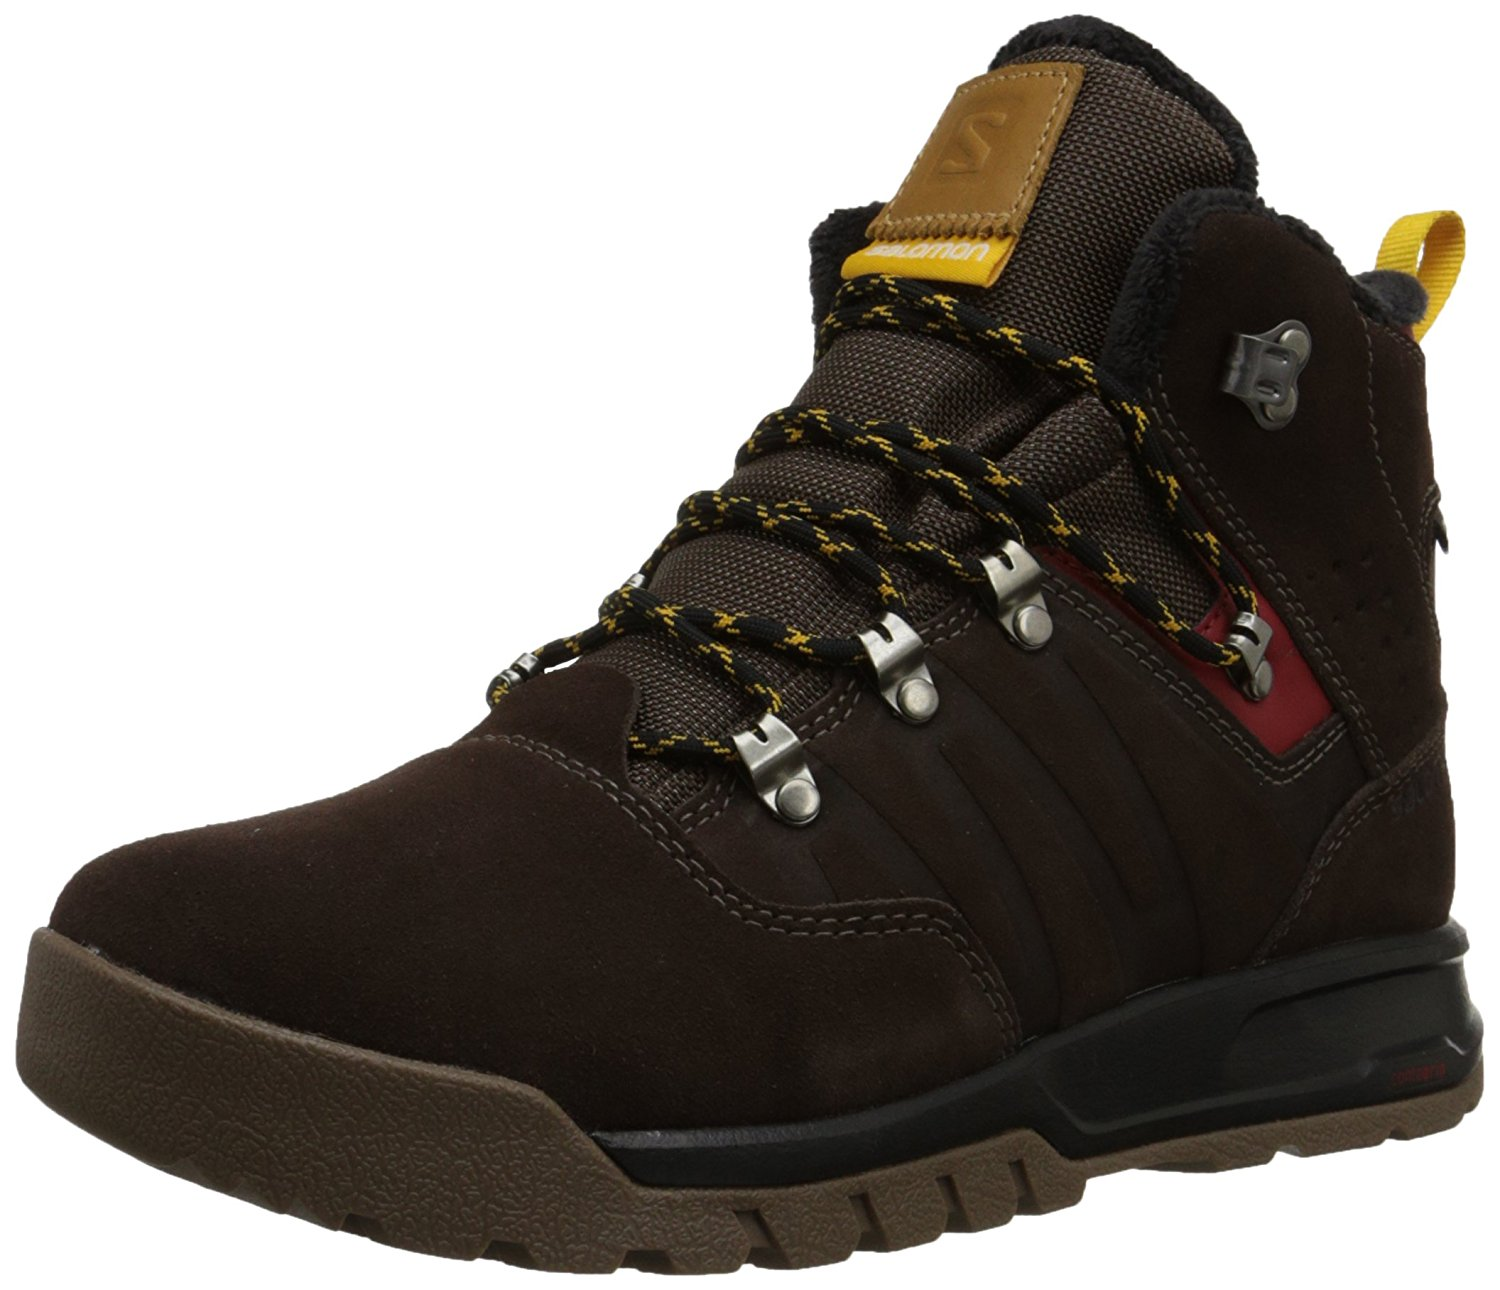 Cheap Boot Find At Hiking Boot Deals On Line Salomon rSqParx4